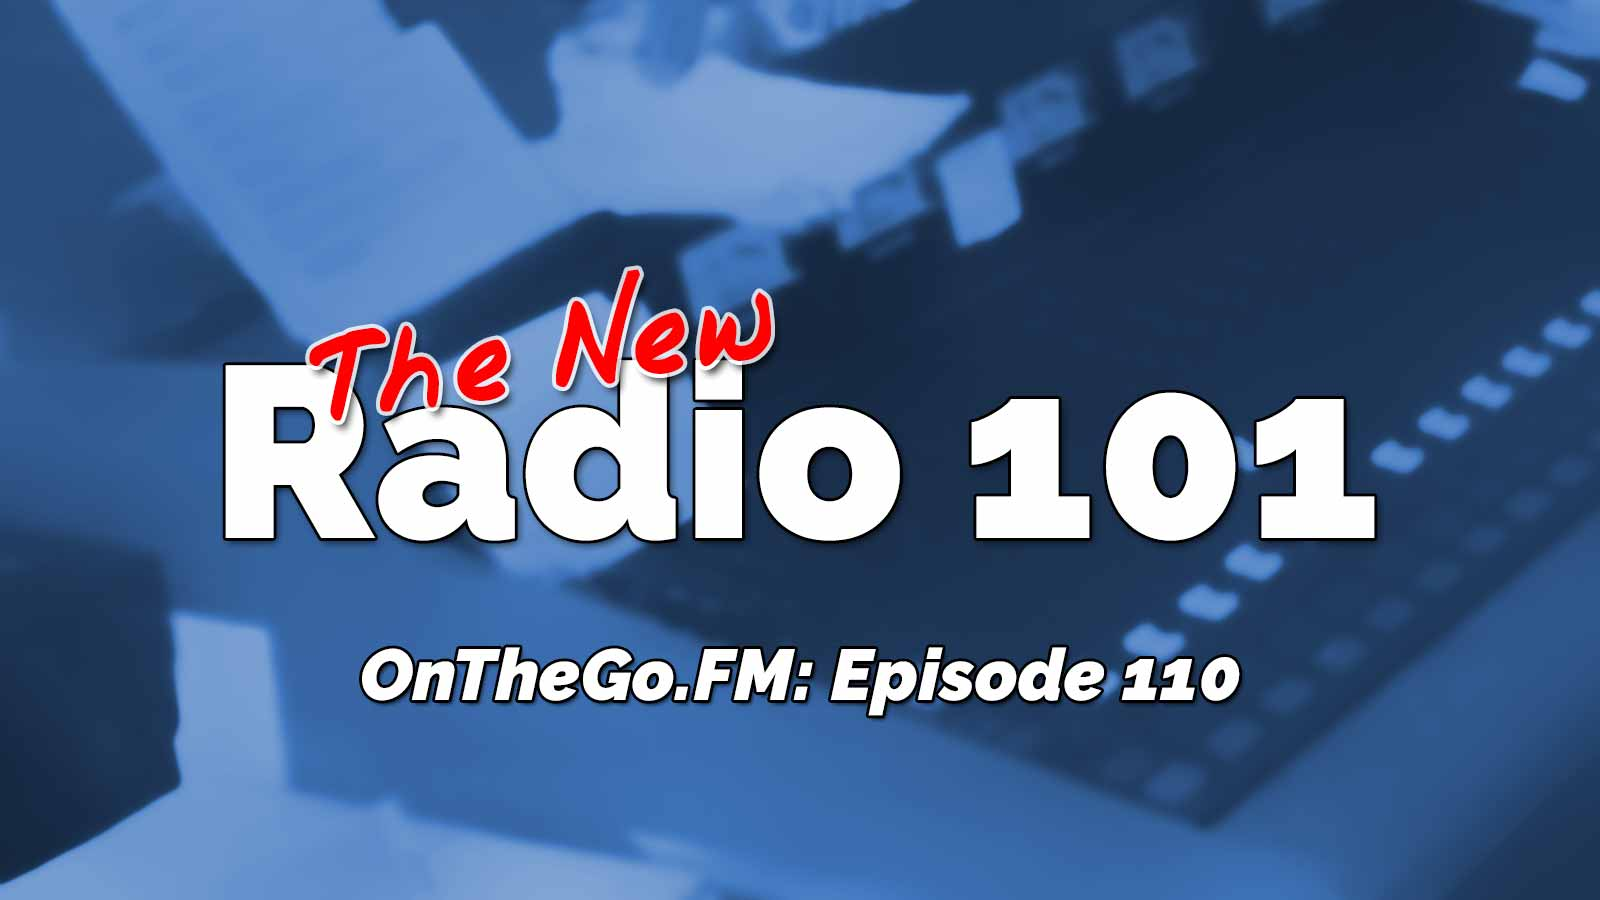 OnTheGo.FM episode 110: The New Radio 101